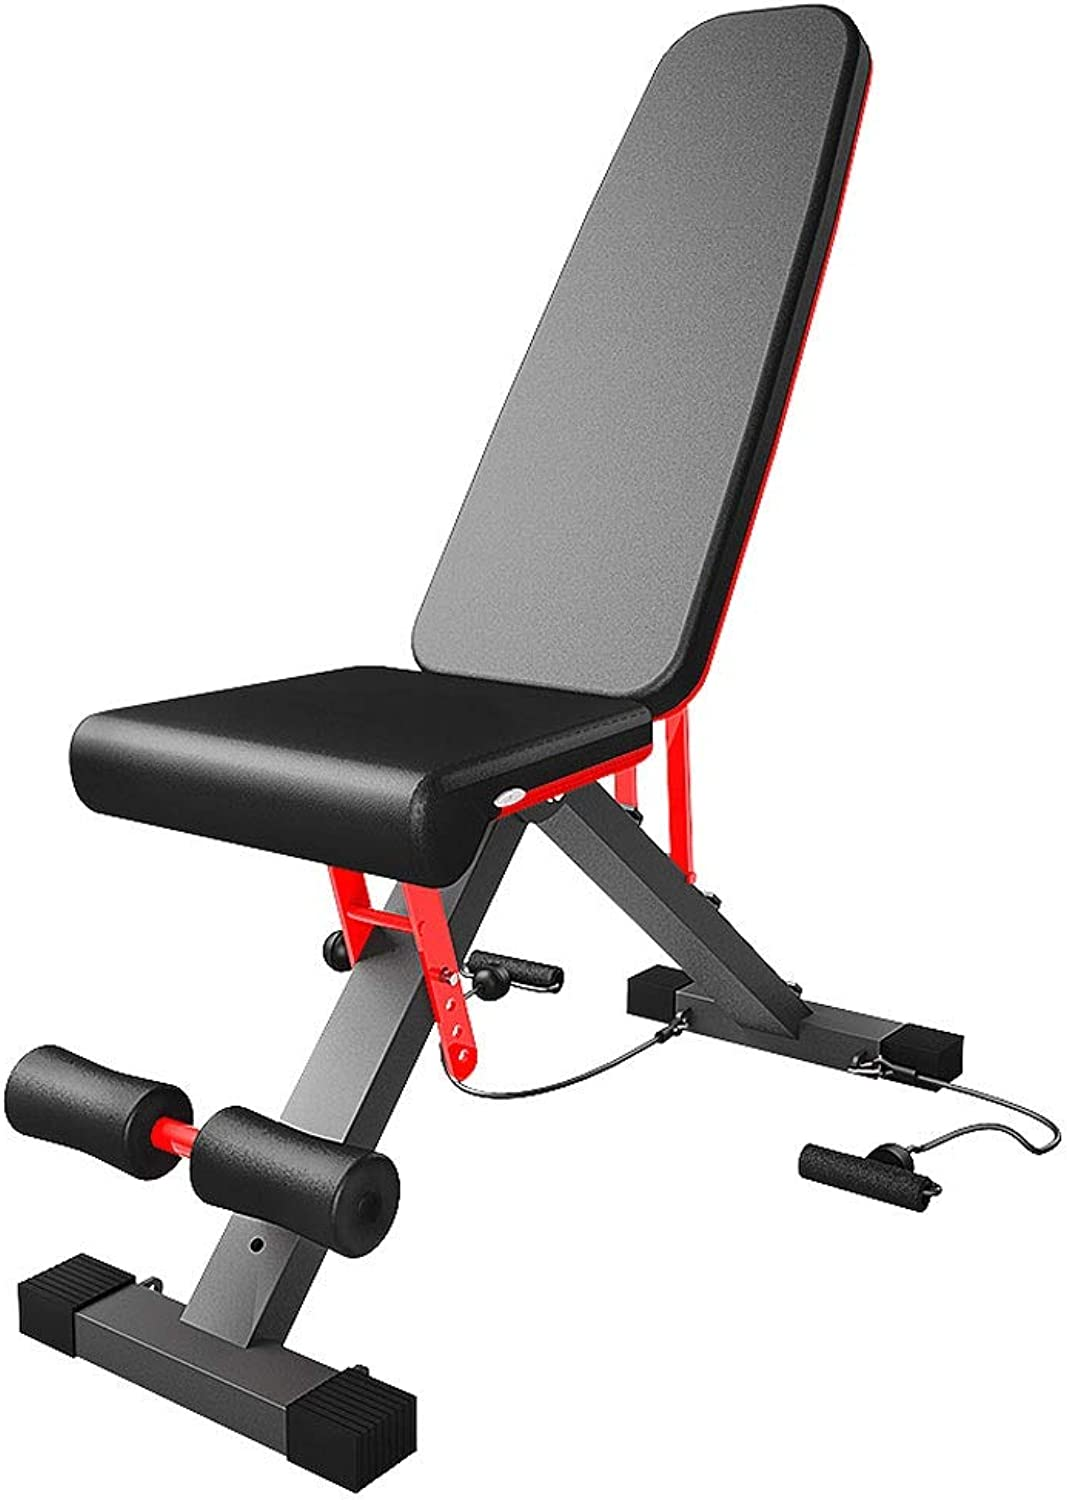 Multifunction Weight Bench Dumbbell Bench Flat Bench Abdominal Aid Sit Up Bench Home Gym Exercise Equipment Flying Bird Chair with 6 Gear Adjustable Backrest and Drawstring